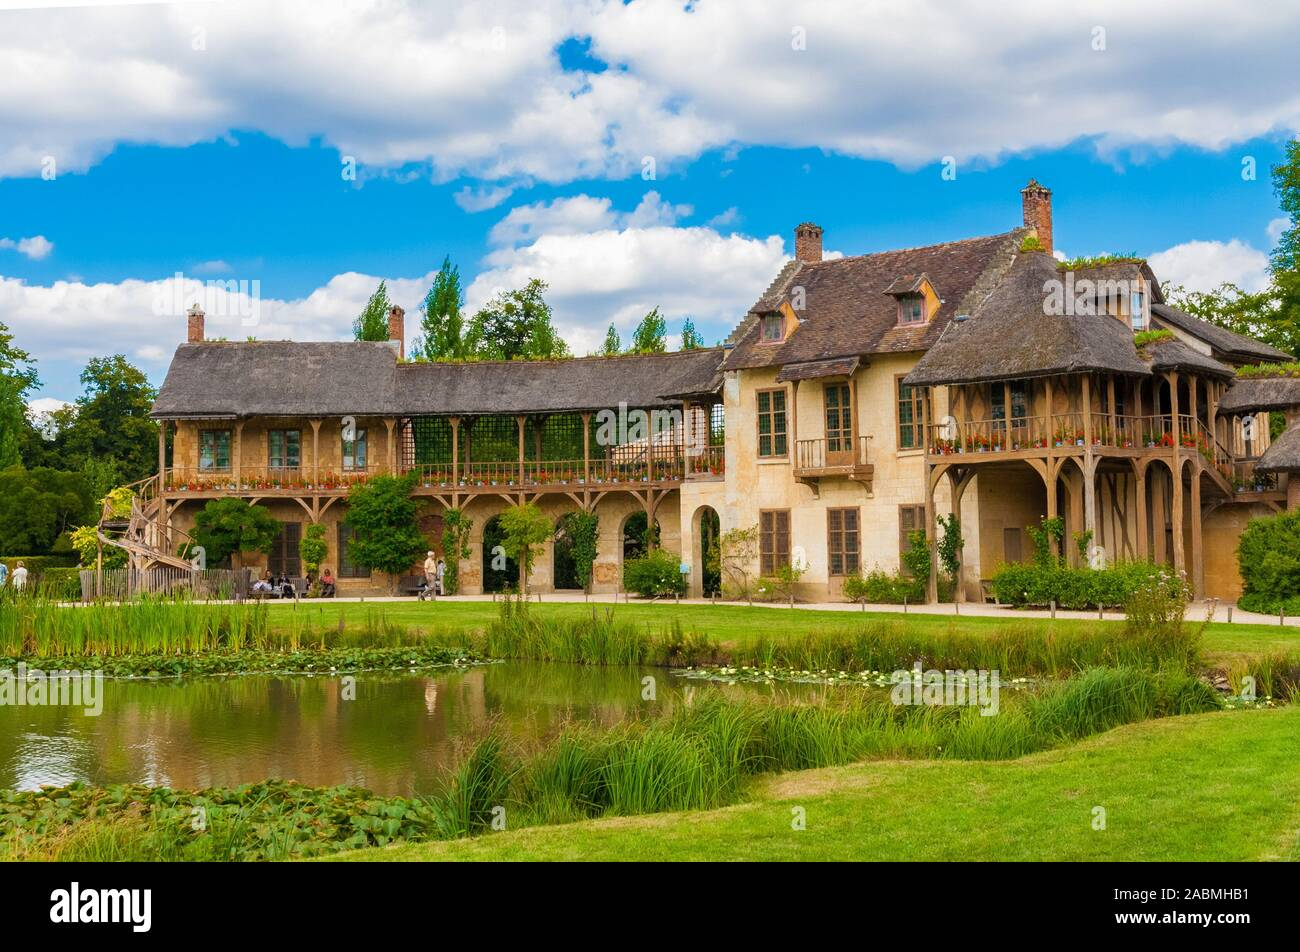 Lovely panoramic view of the Queen's House and the adjoining Réchauffoir in the Hamlet of the Trianon gardens in Versailles. The two rustic buildings... Stock Photo